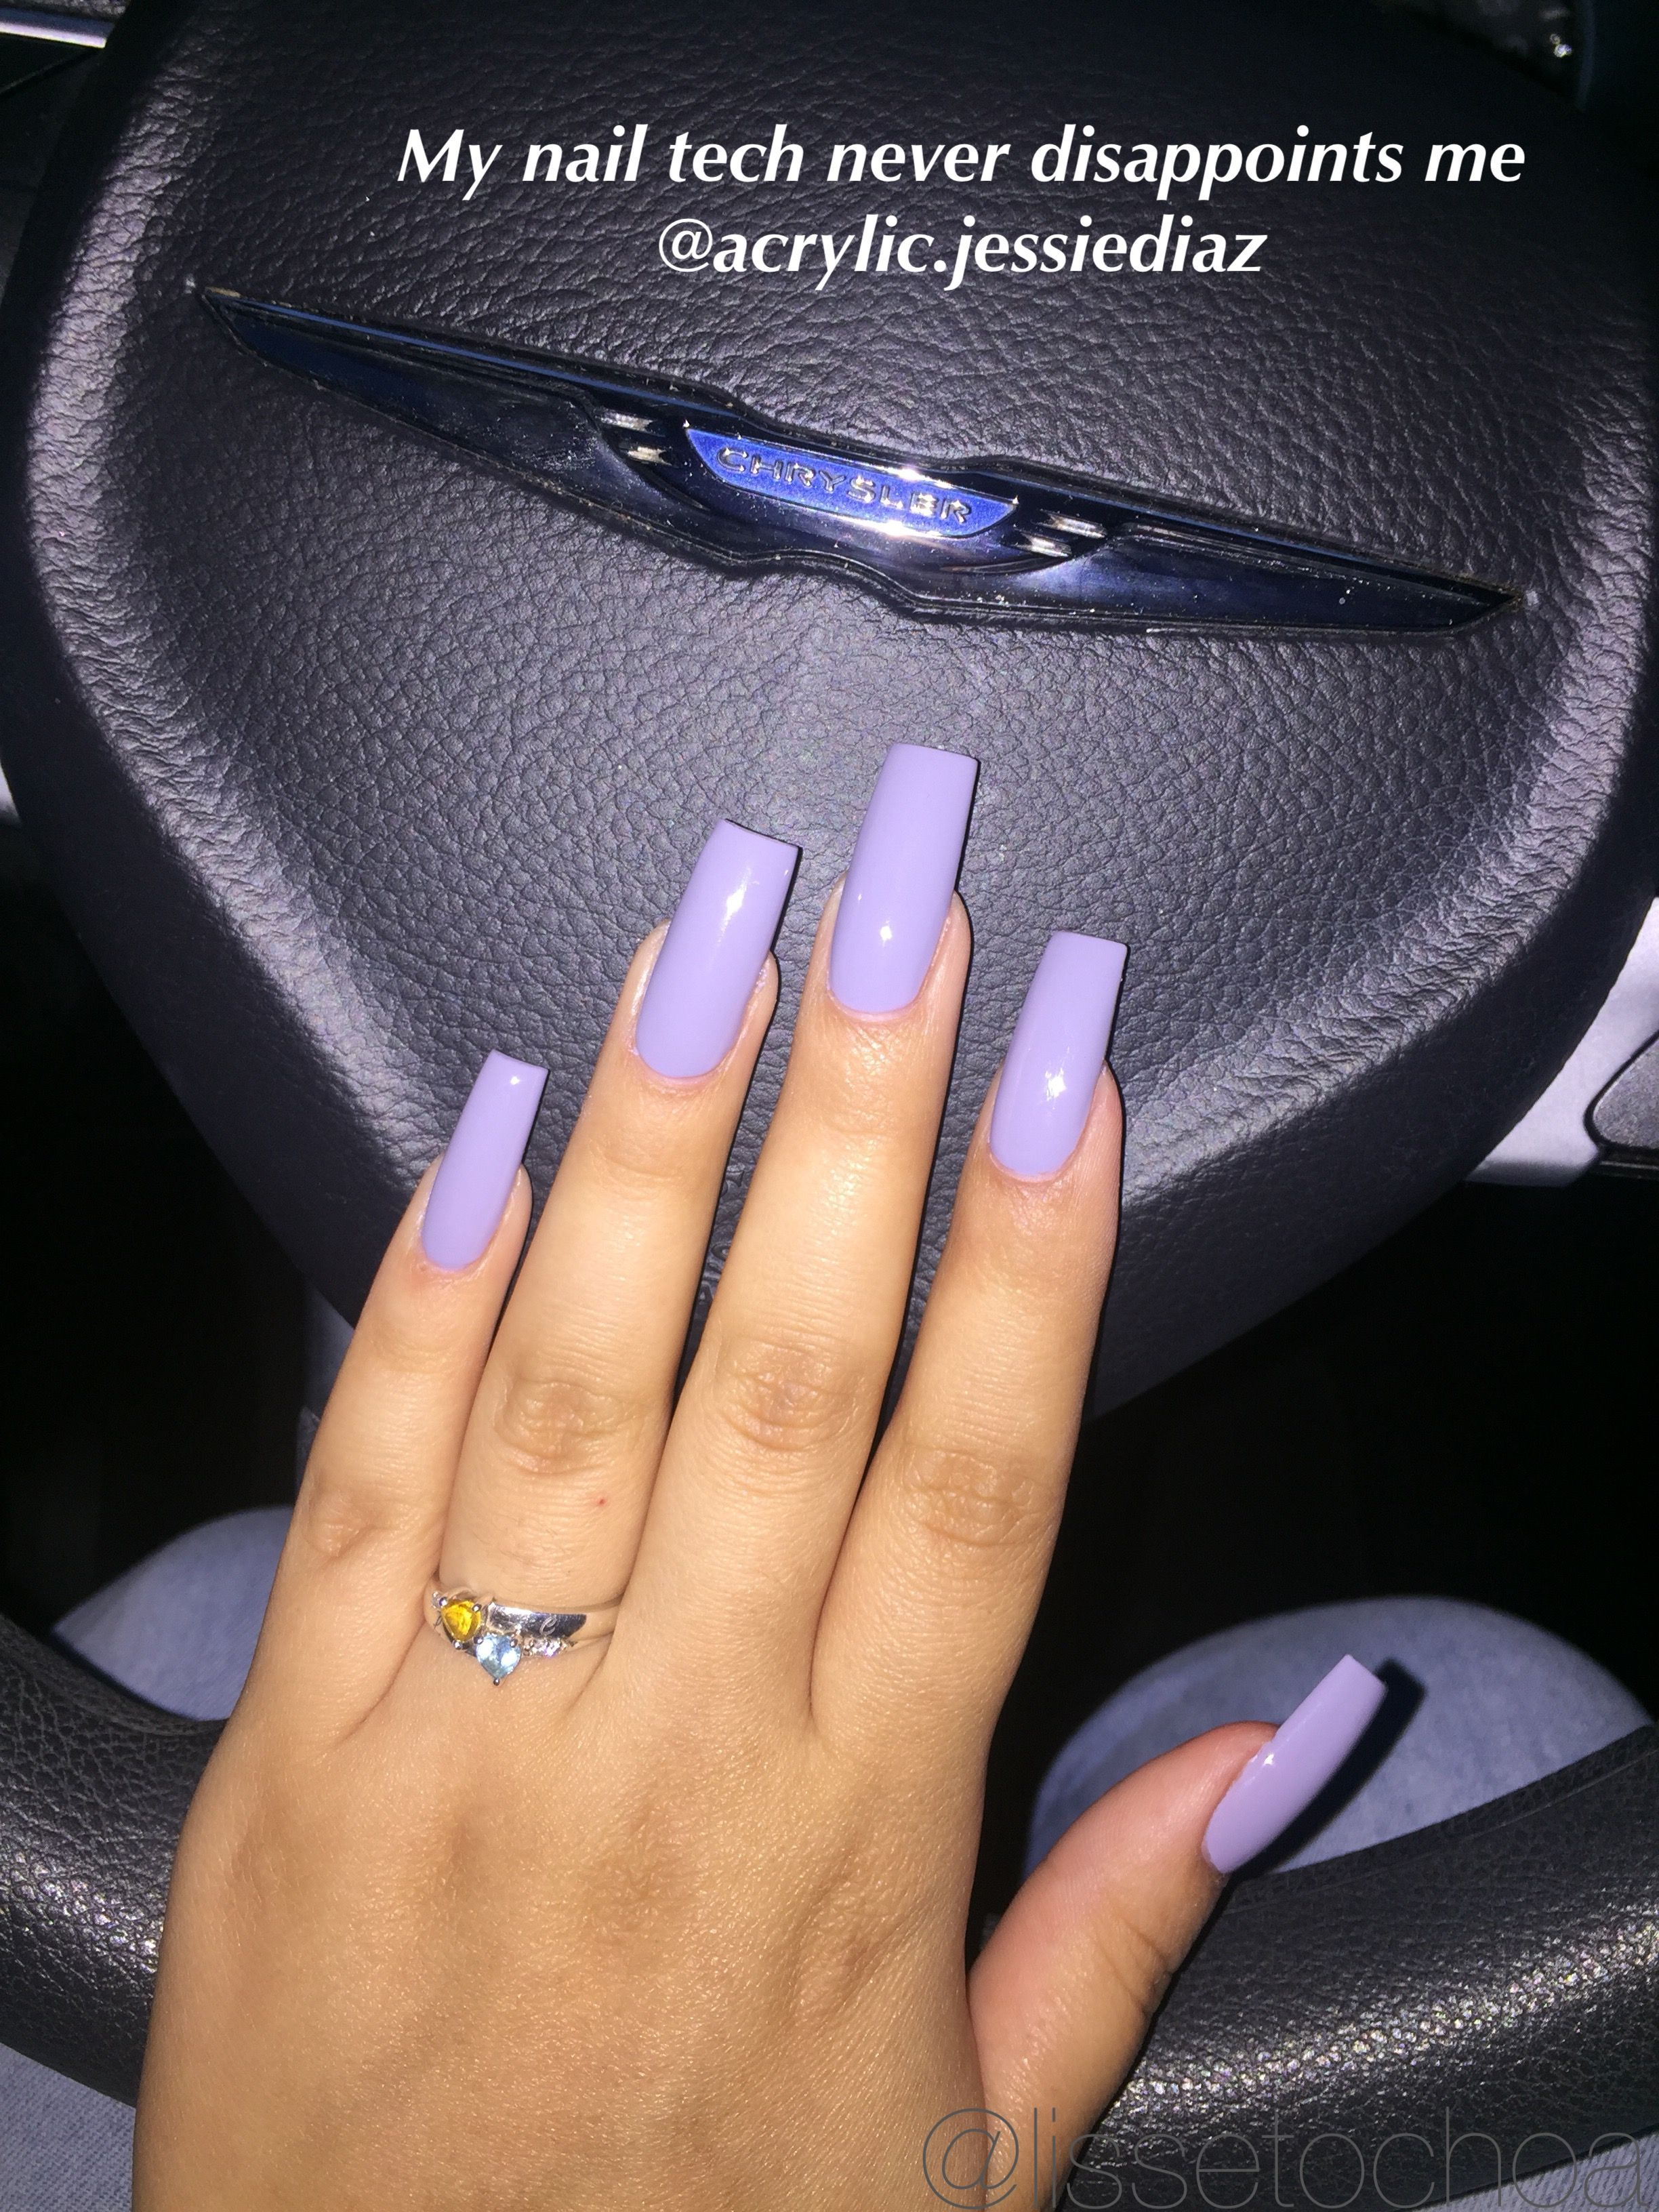 Square Acrylic Nails In 2020 Curved Nails Long Square Nails Square Acrylic Nails